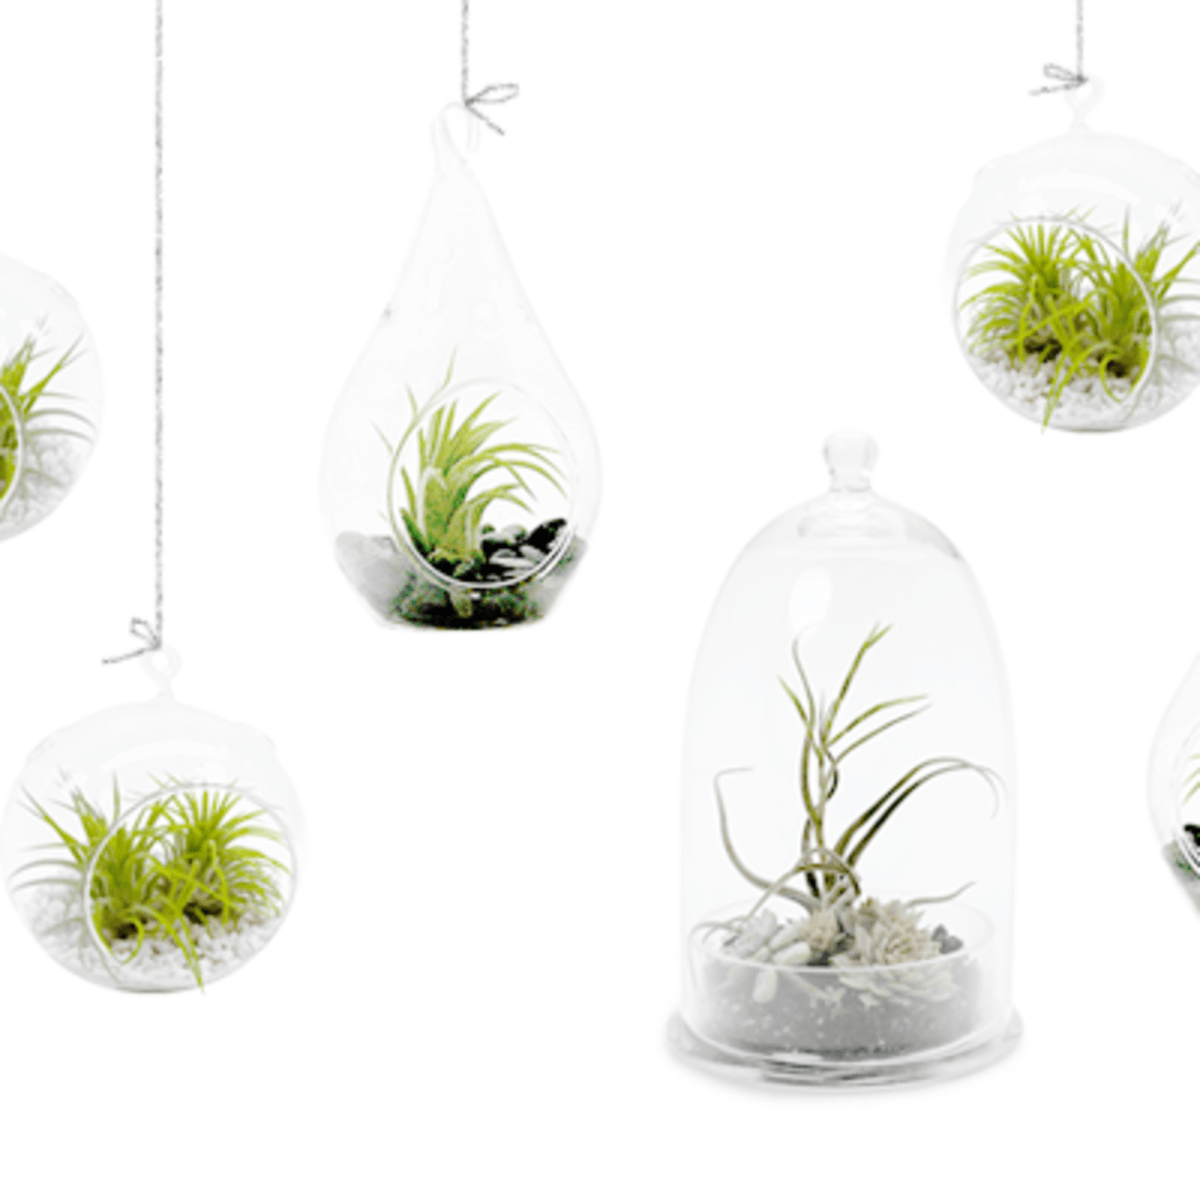 4 Simple Steps To Making Your Own Diy Terrarium Verily